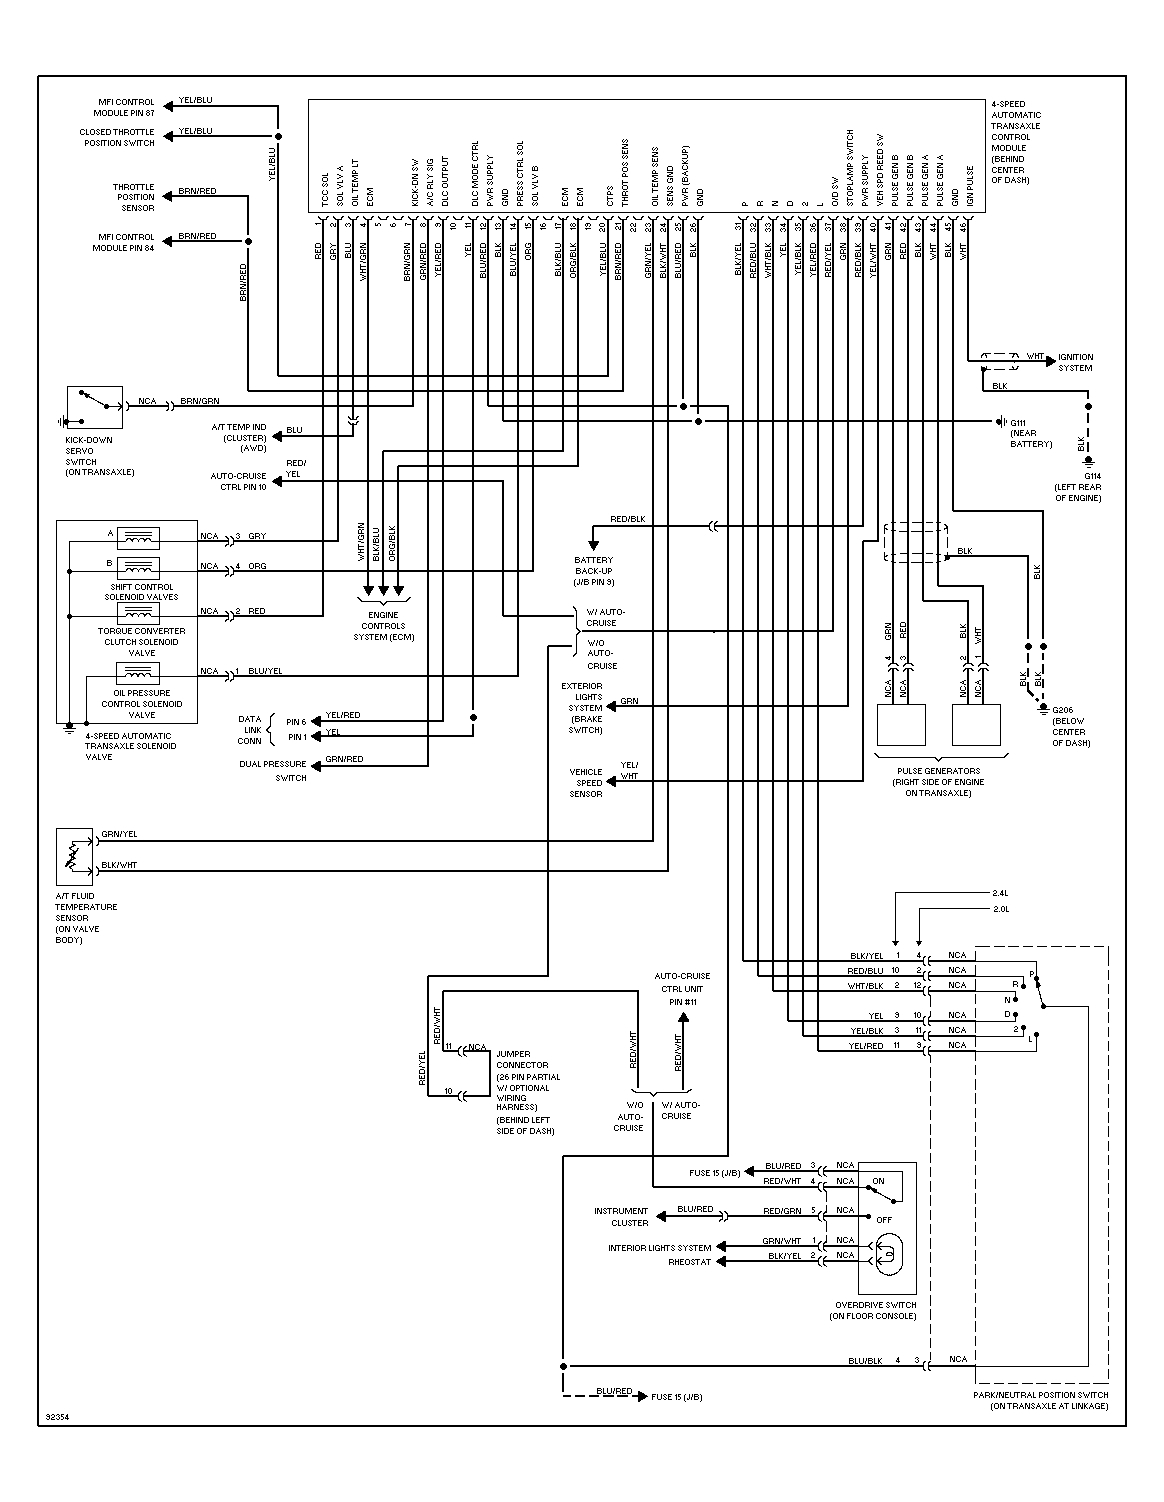 2001 mitsubishi eclipse wiring diagram | free wiring diagram wiring harness diagram for 2001 eclipse #6